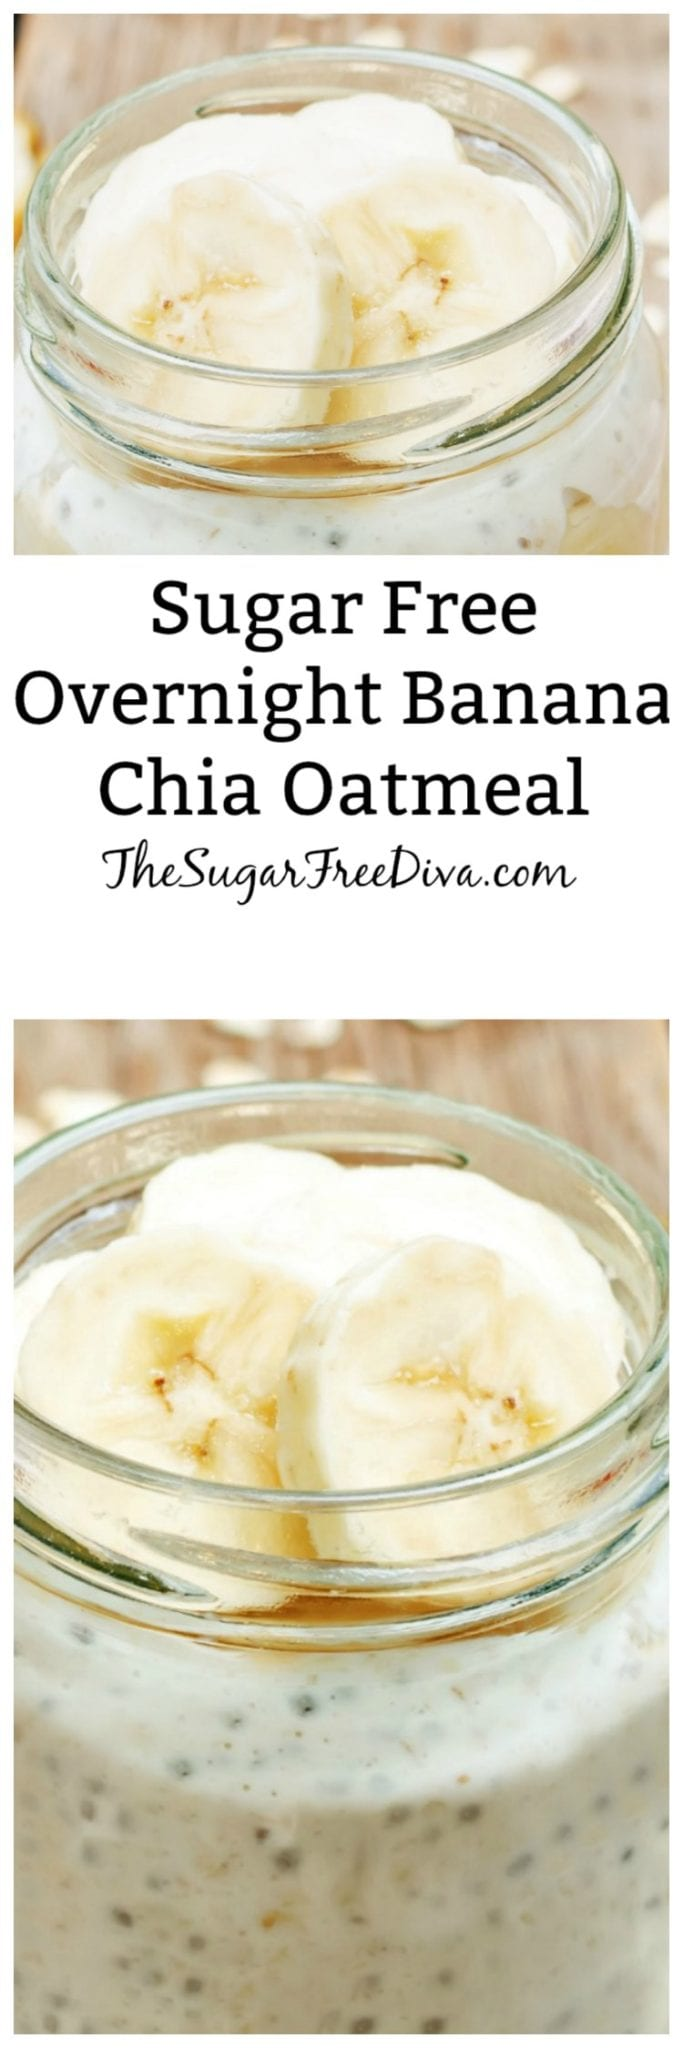 Sugar Free Overnight Banana Chia Oatmeal